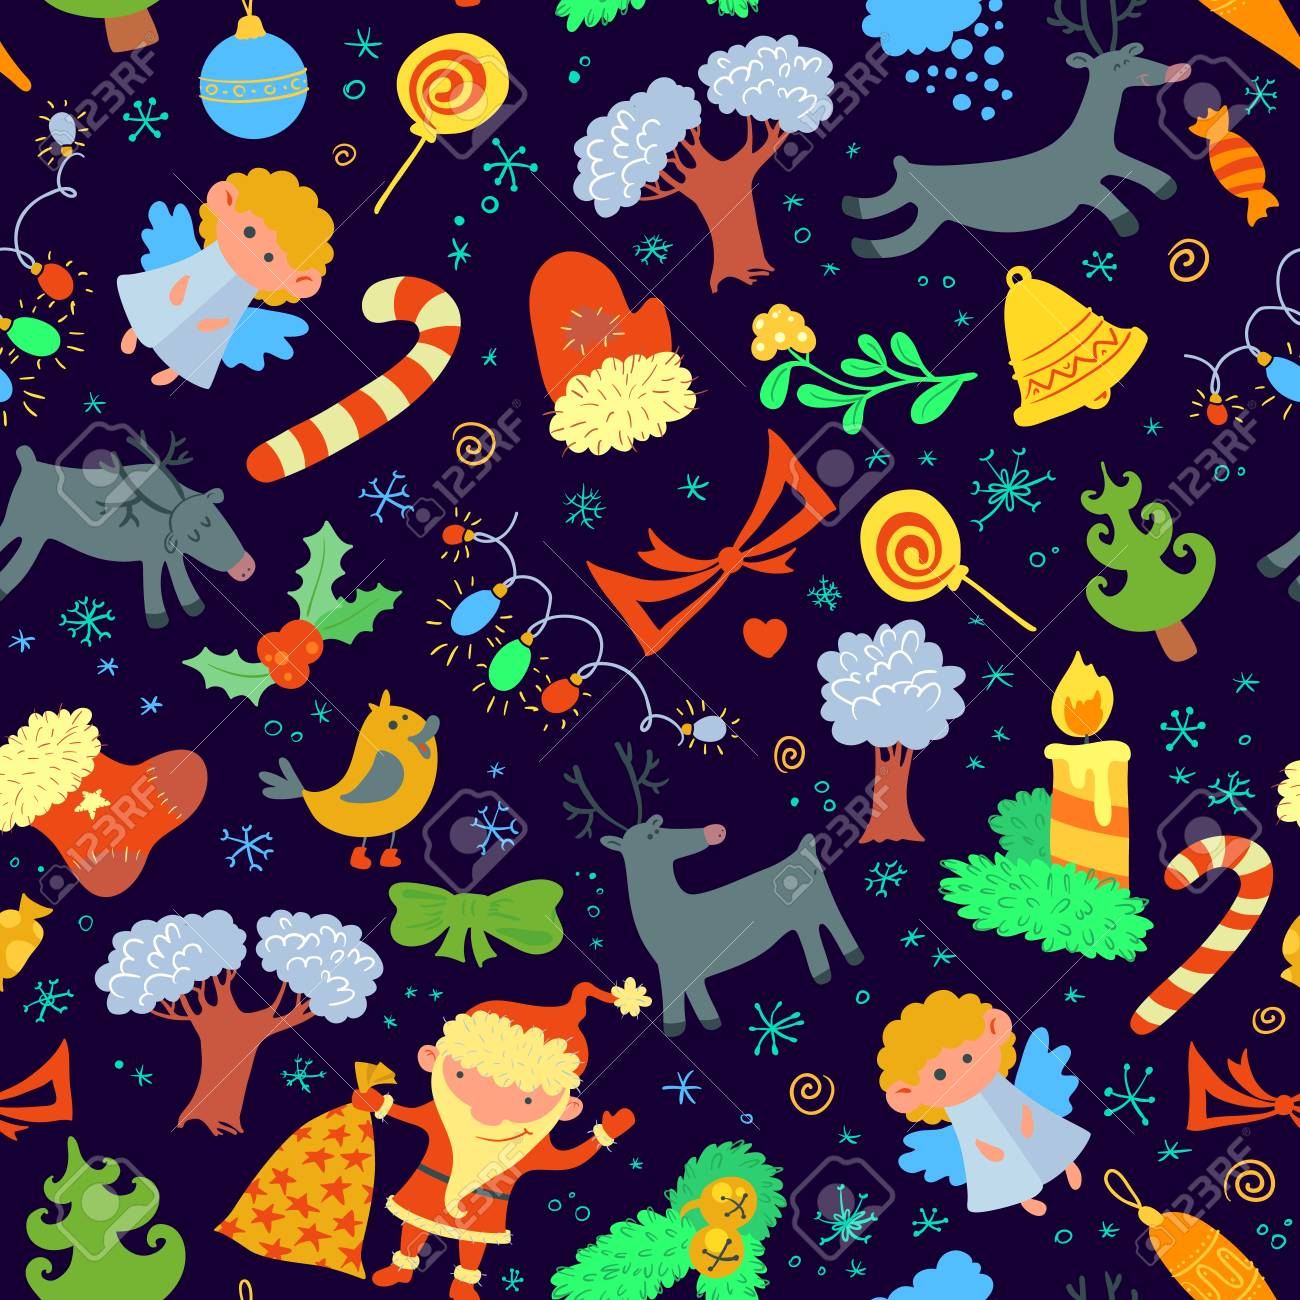 Seamless pattern with Christmas stuff Stock Vector - 22496188